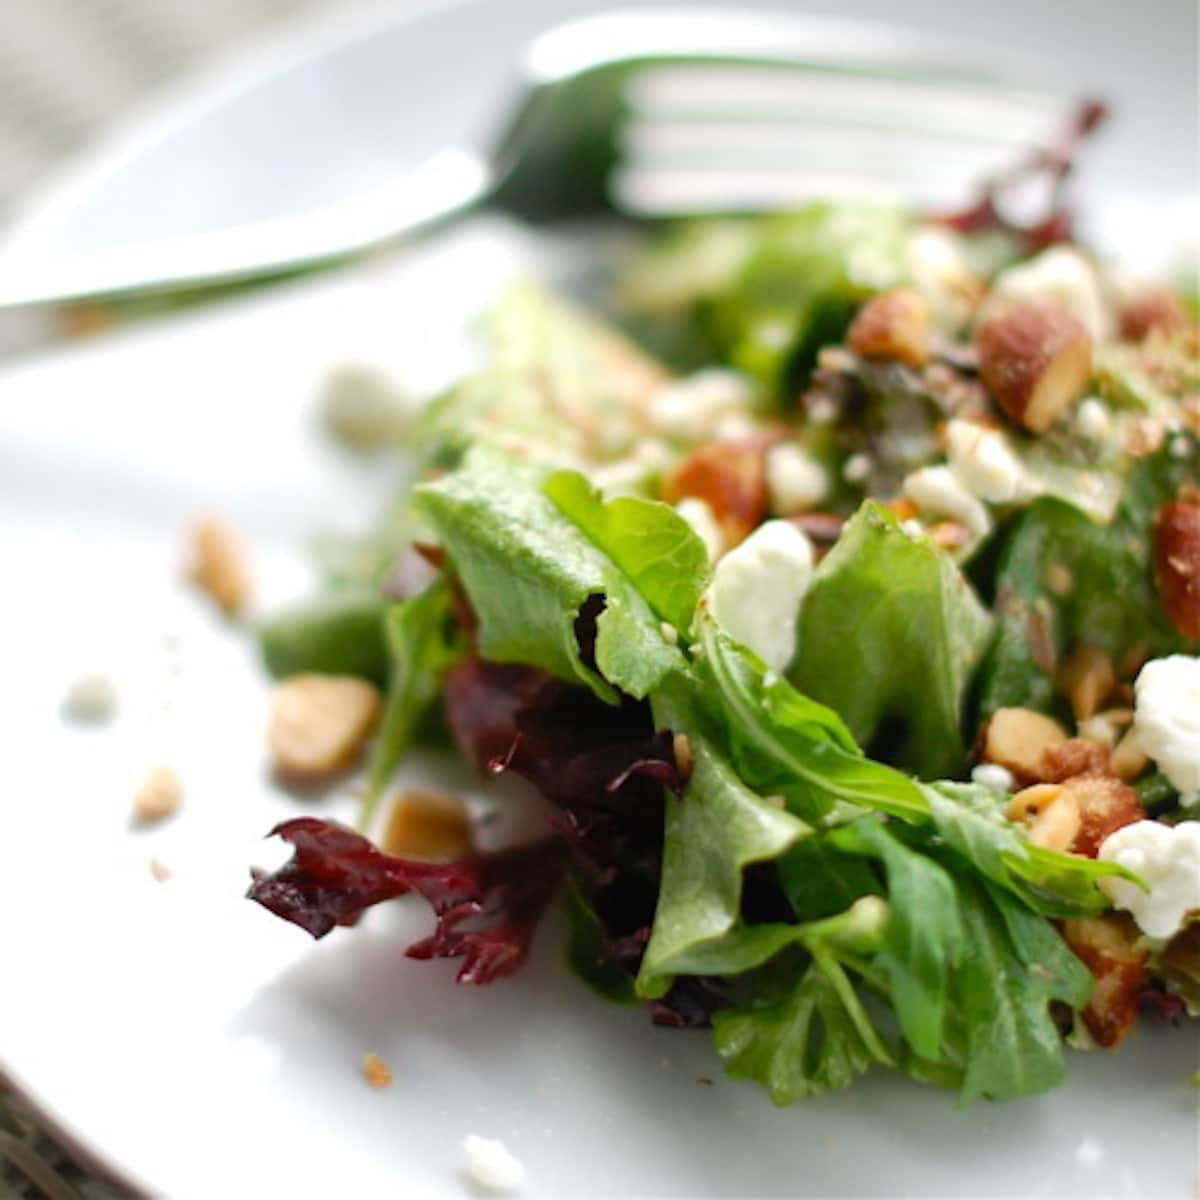 Smoked almond and goat cheese salad.